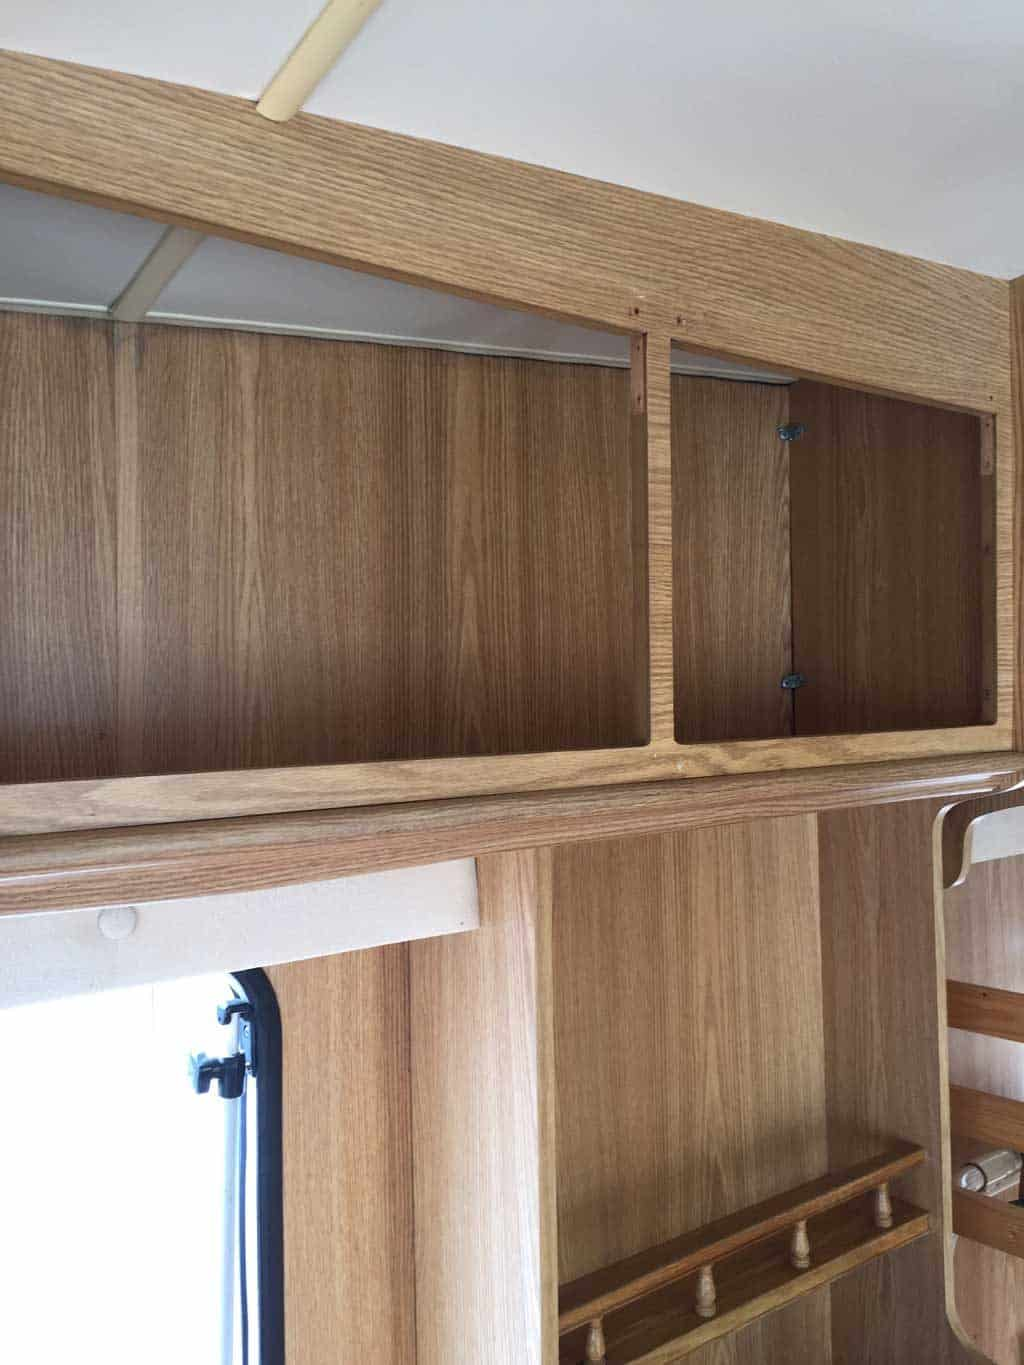 Tips for decorating a caravan by The Twinkle Diaries